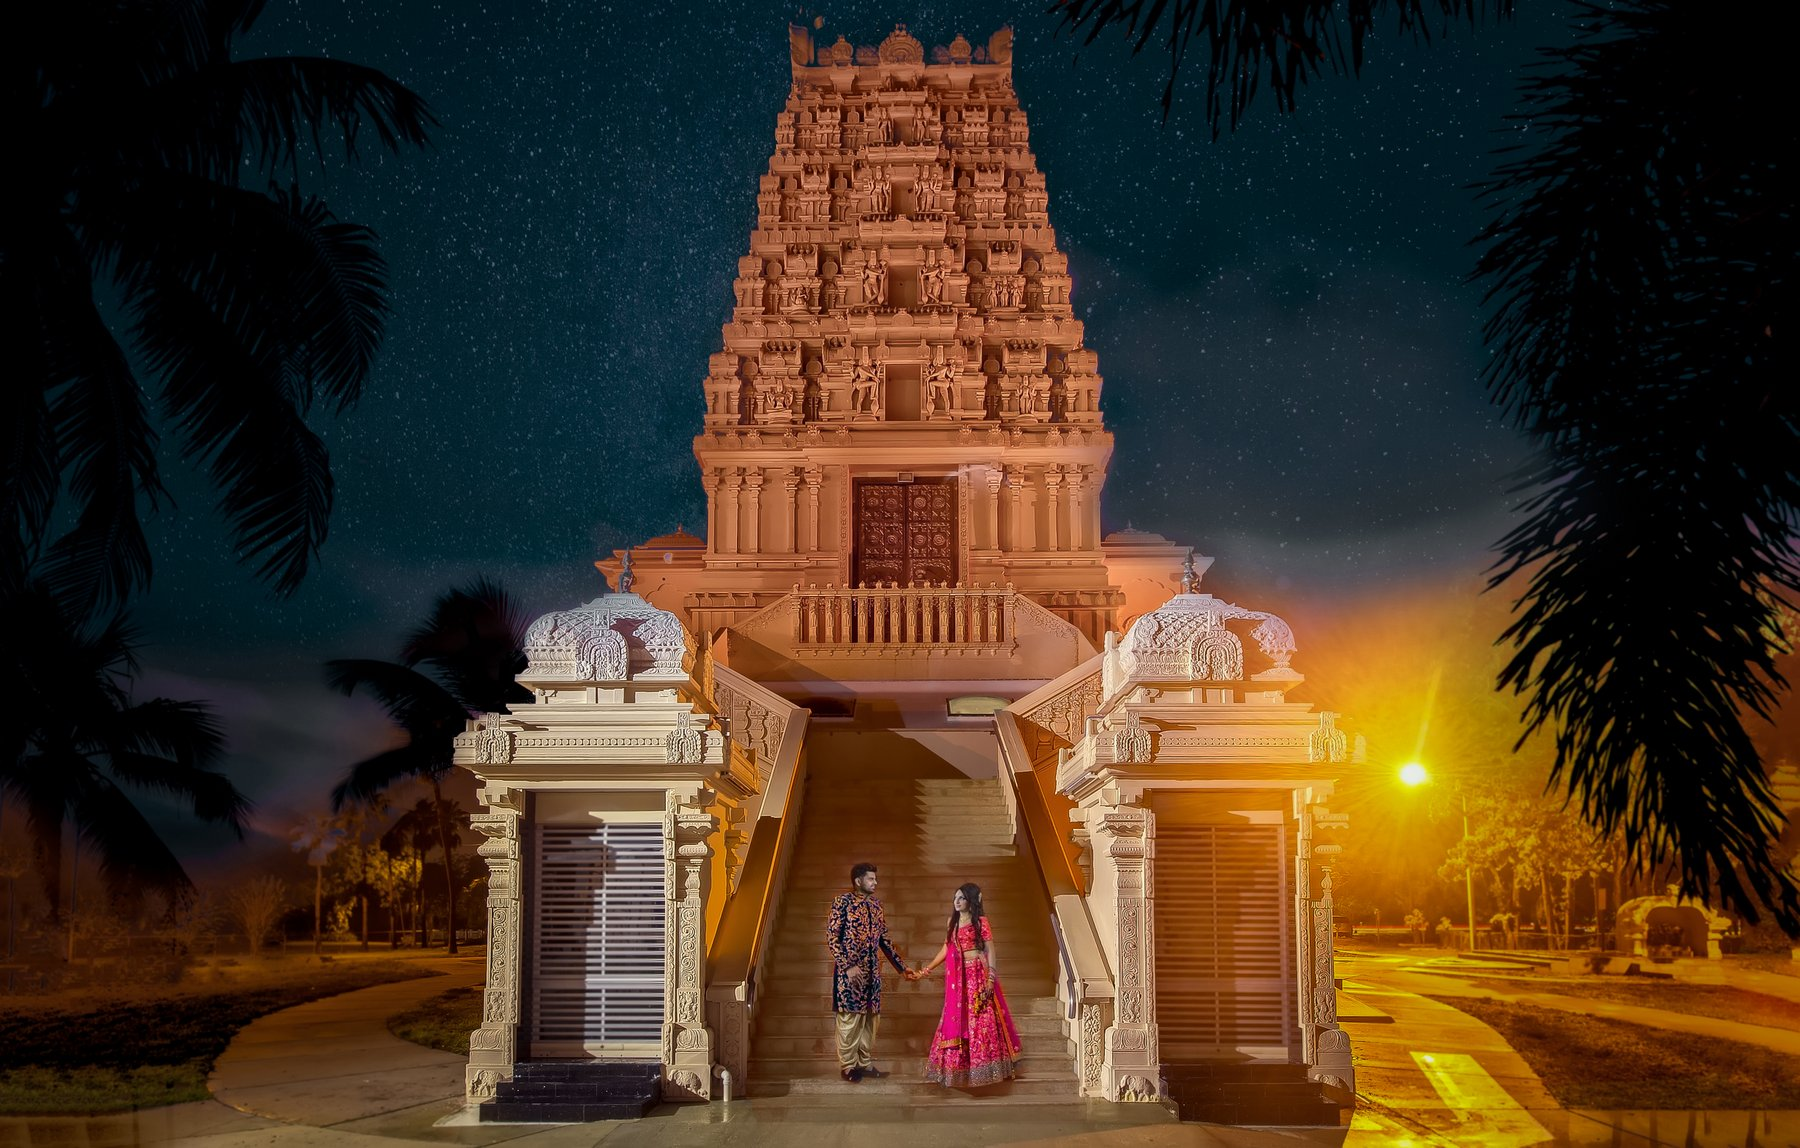 The Hindu Temple of Florida at Night | Tampa, FL, Miami Wedding Photographers | Häring Photography, Indian Wedding Photographer in Florida, Best Muslim, Hindu - South East Asian Wedding Photographers